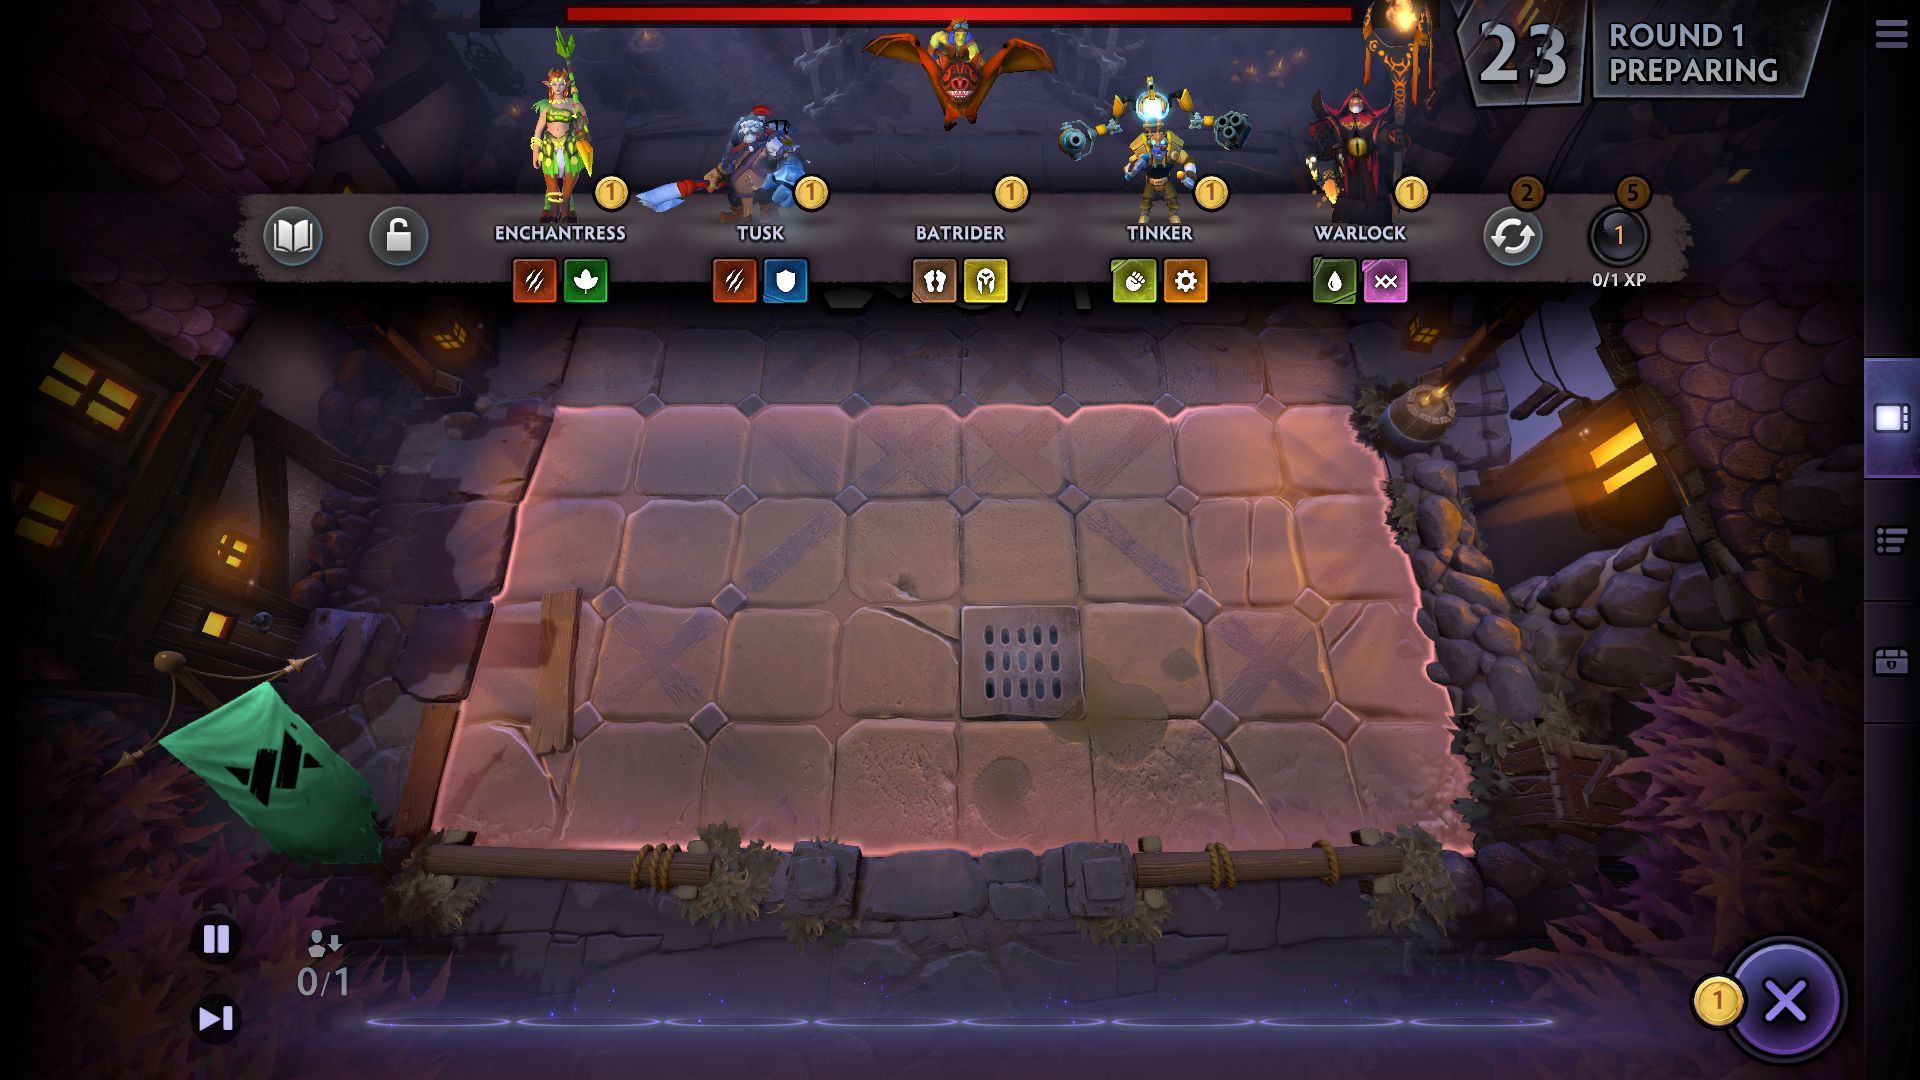 Dota Underlords: The Definitive Way to Enjoy Auto Chess